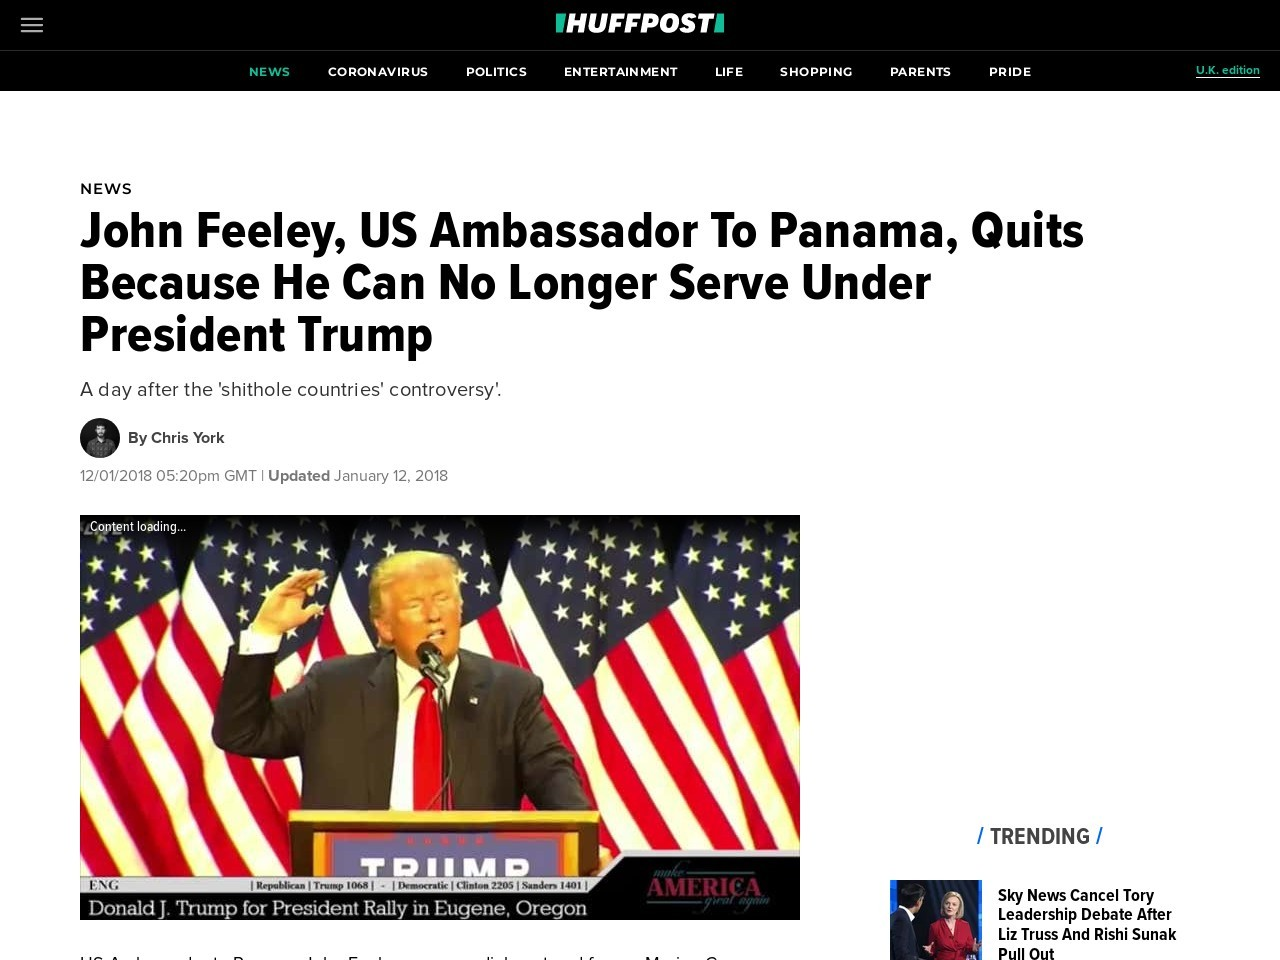 John Feeley, US Ambassador To Panama, Quits Because He Can No Longer Serve Under President Trump